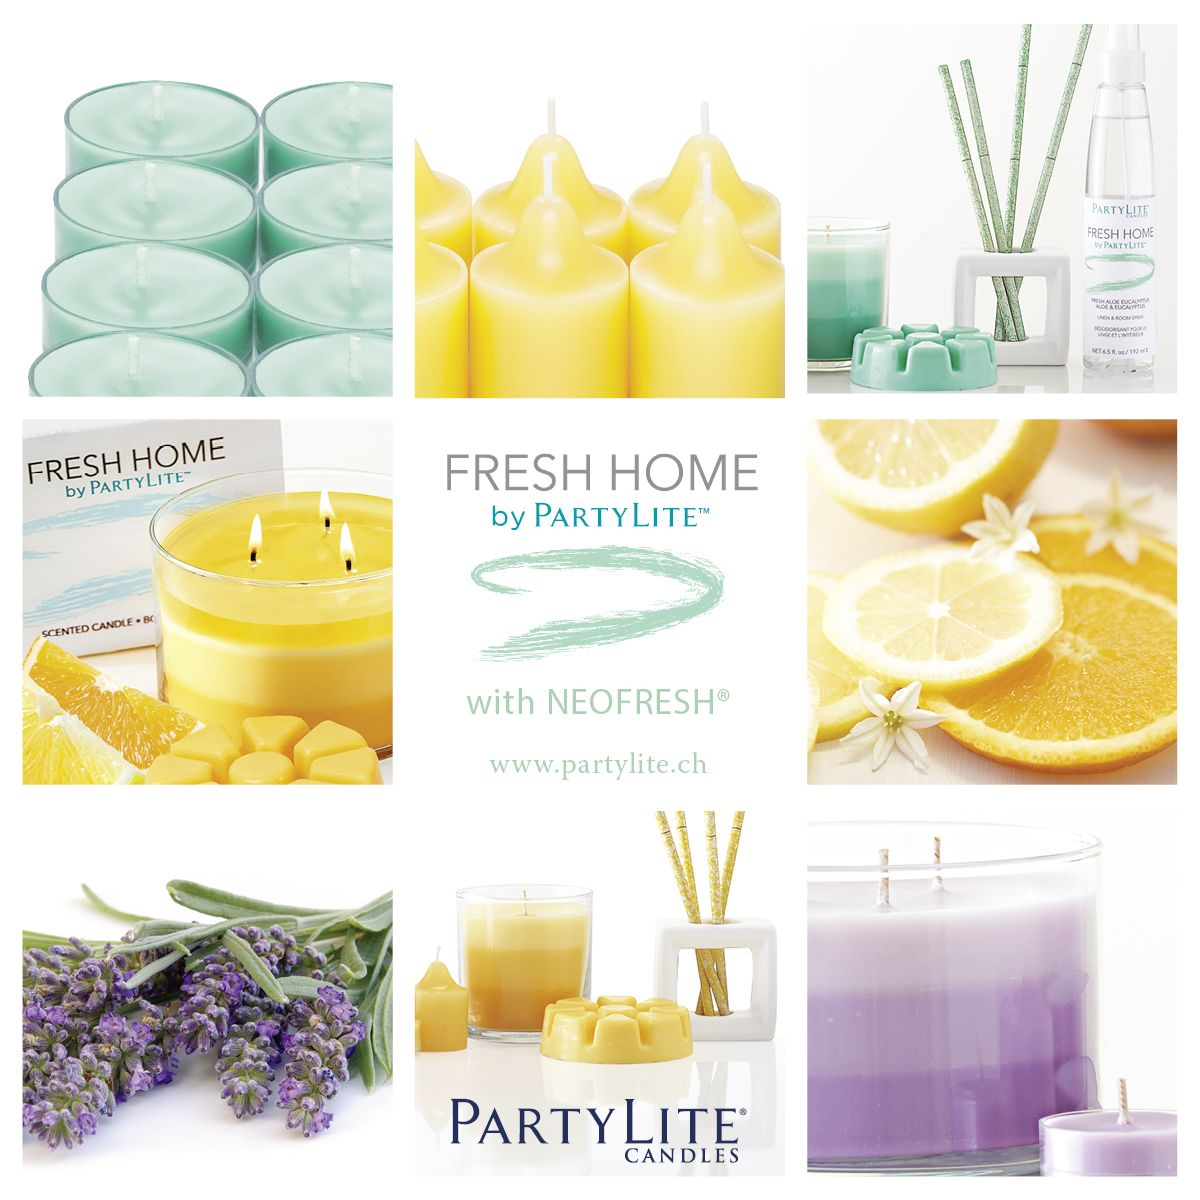 Fresh Home By Partylite Mit Neofresh Https Monikagantzer Interiors Inside Ideas Interiors design about Everything [magnanprojects.com]